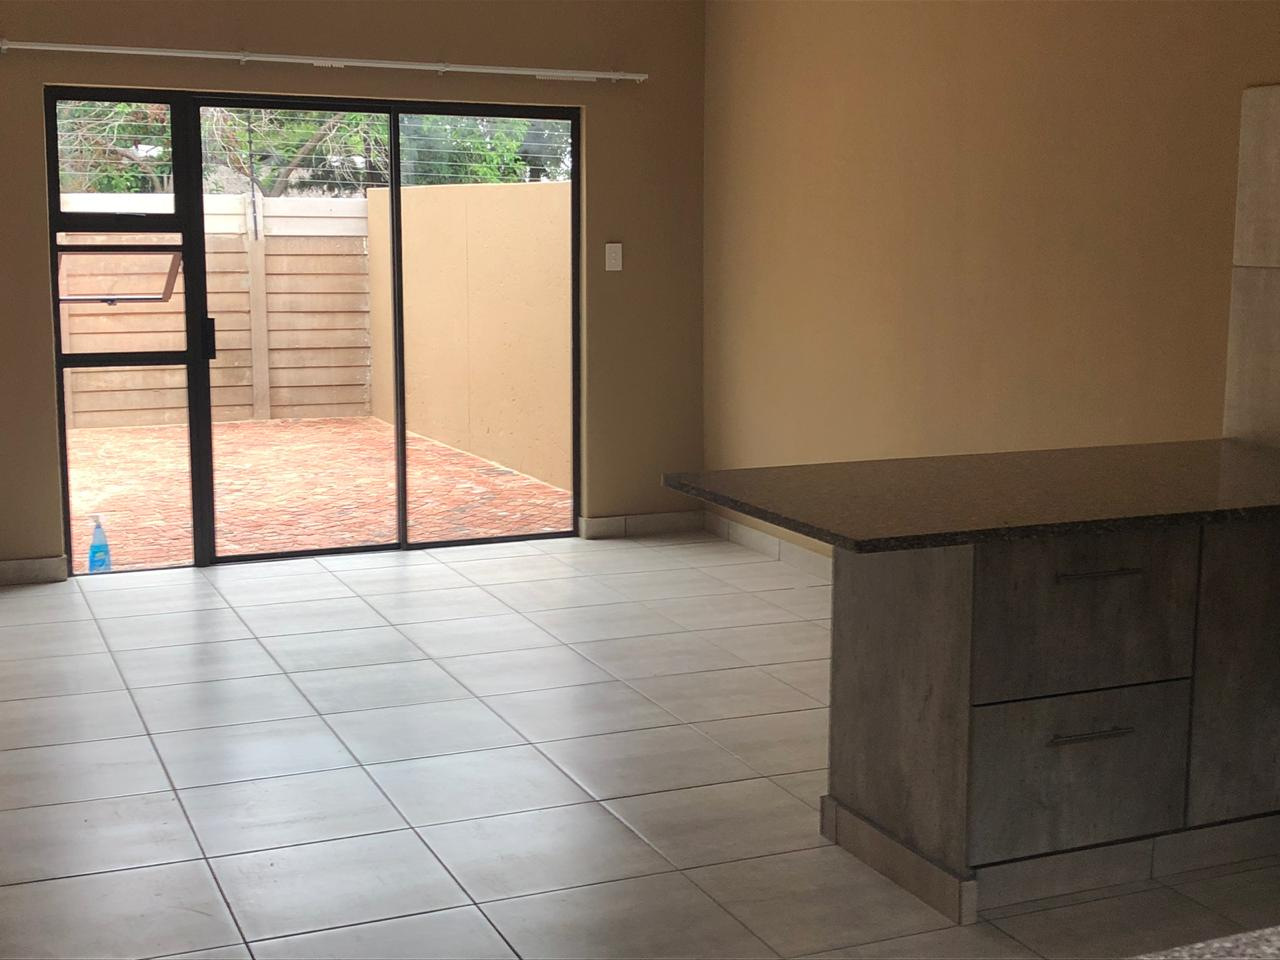 3 BEDROOM DUET IN PRETORIA NORTH